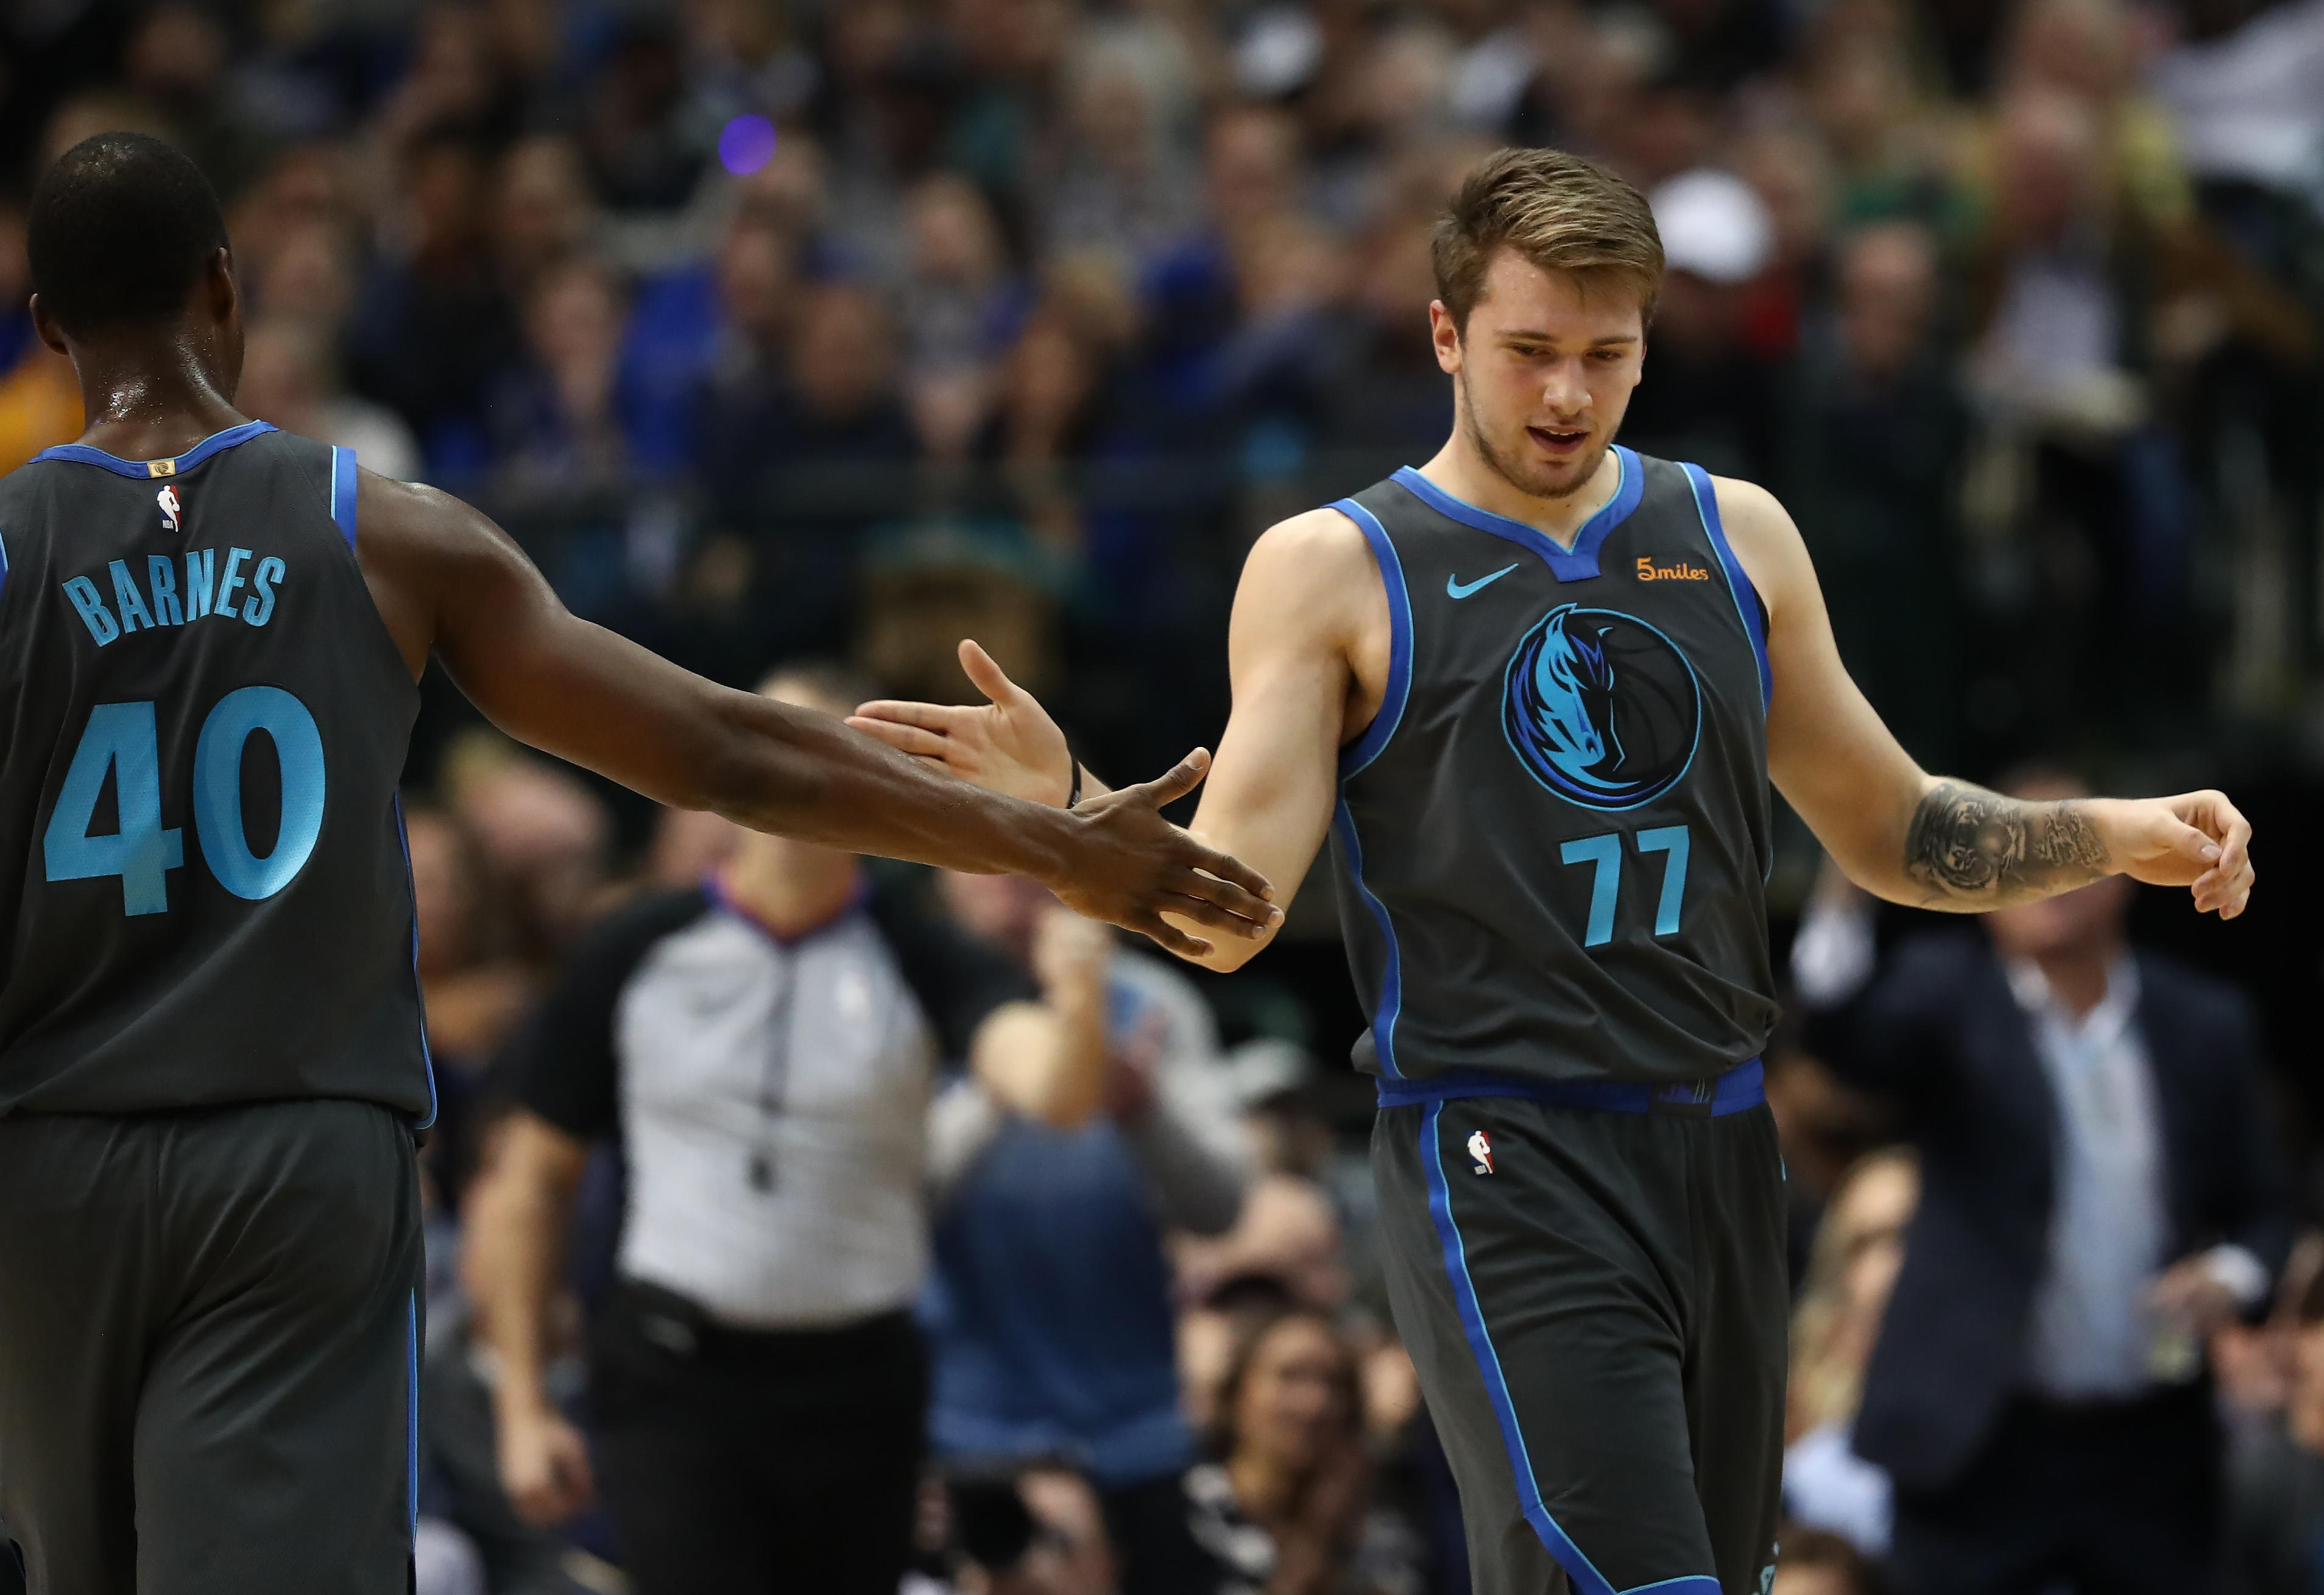 mavs rookie luka doncic ranked near top of usa todays - HD3200×2196